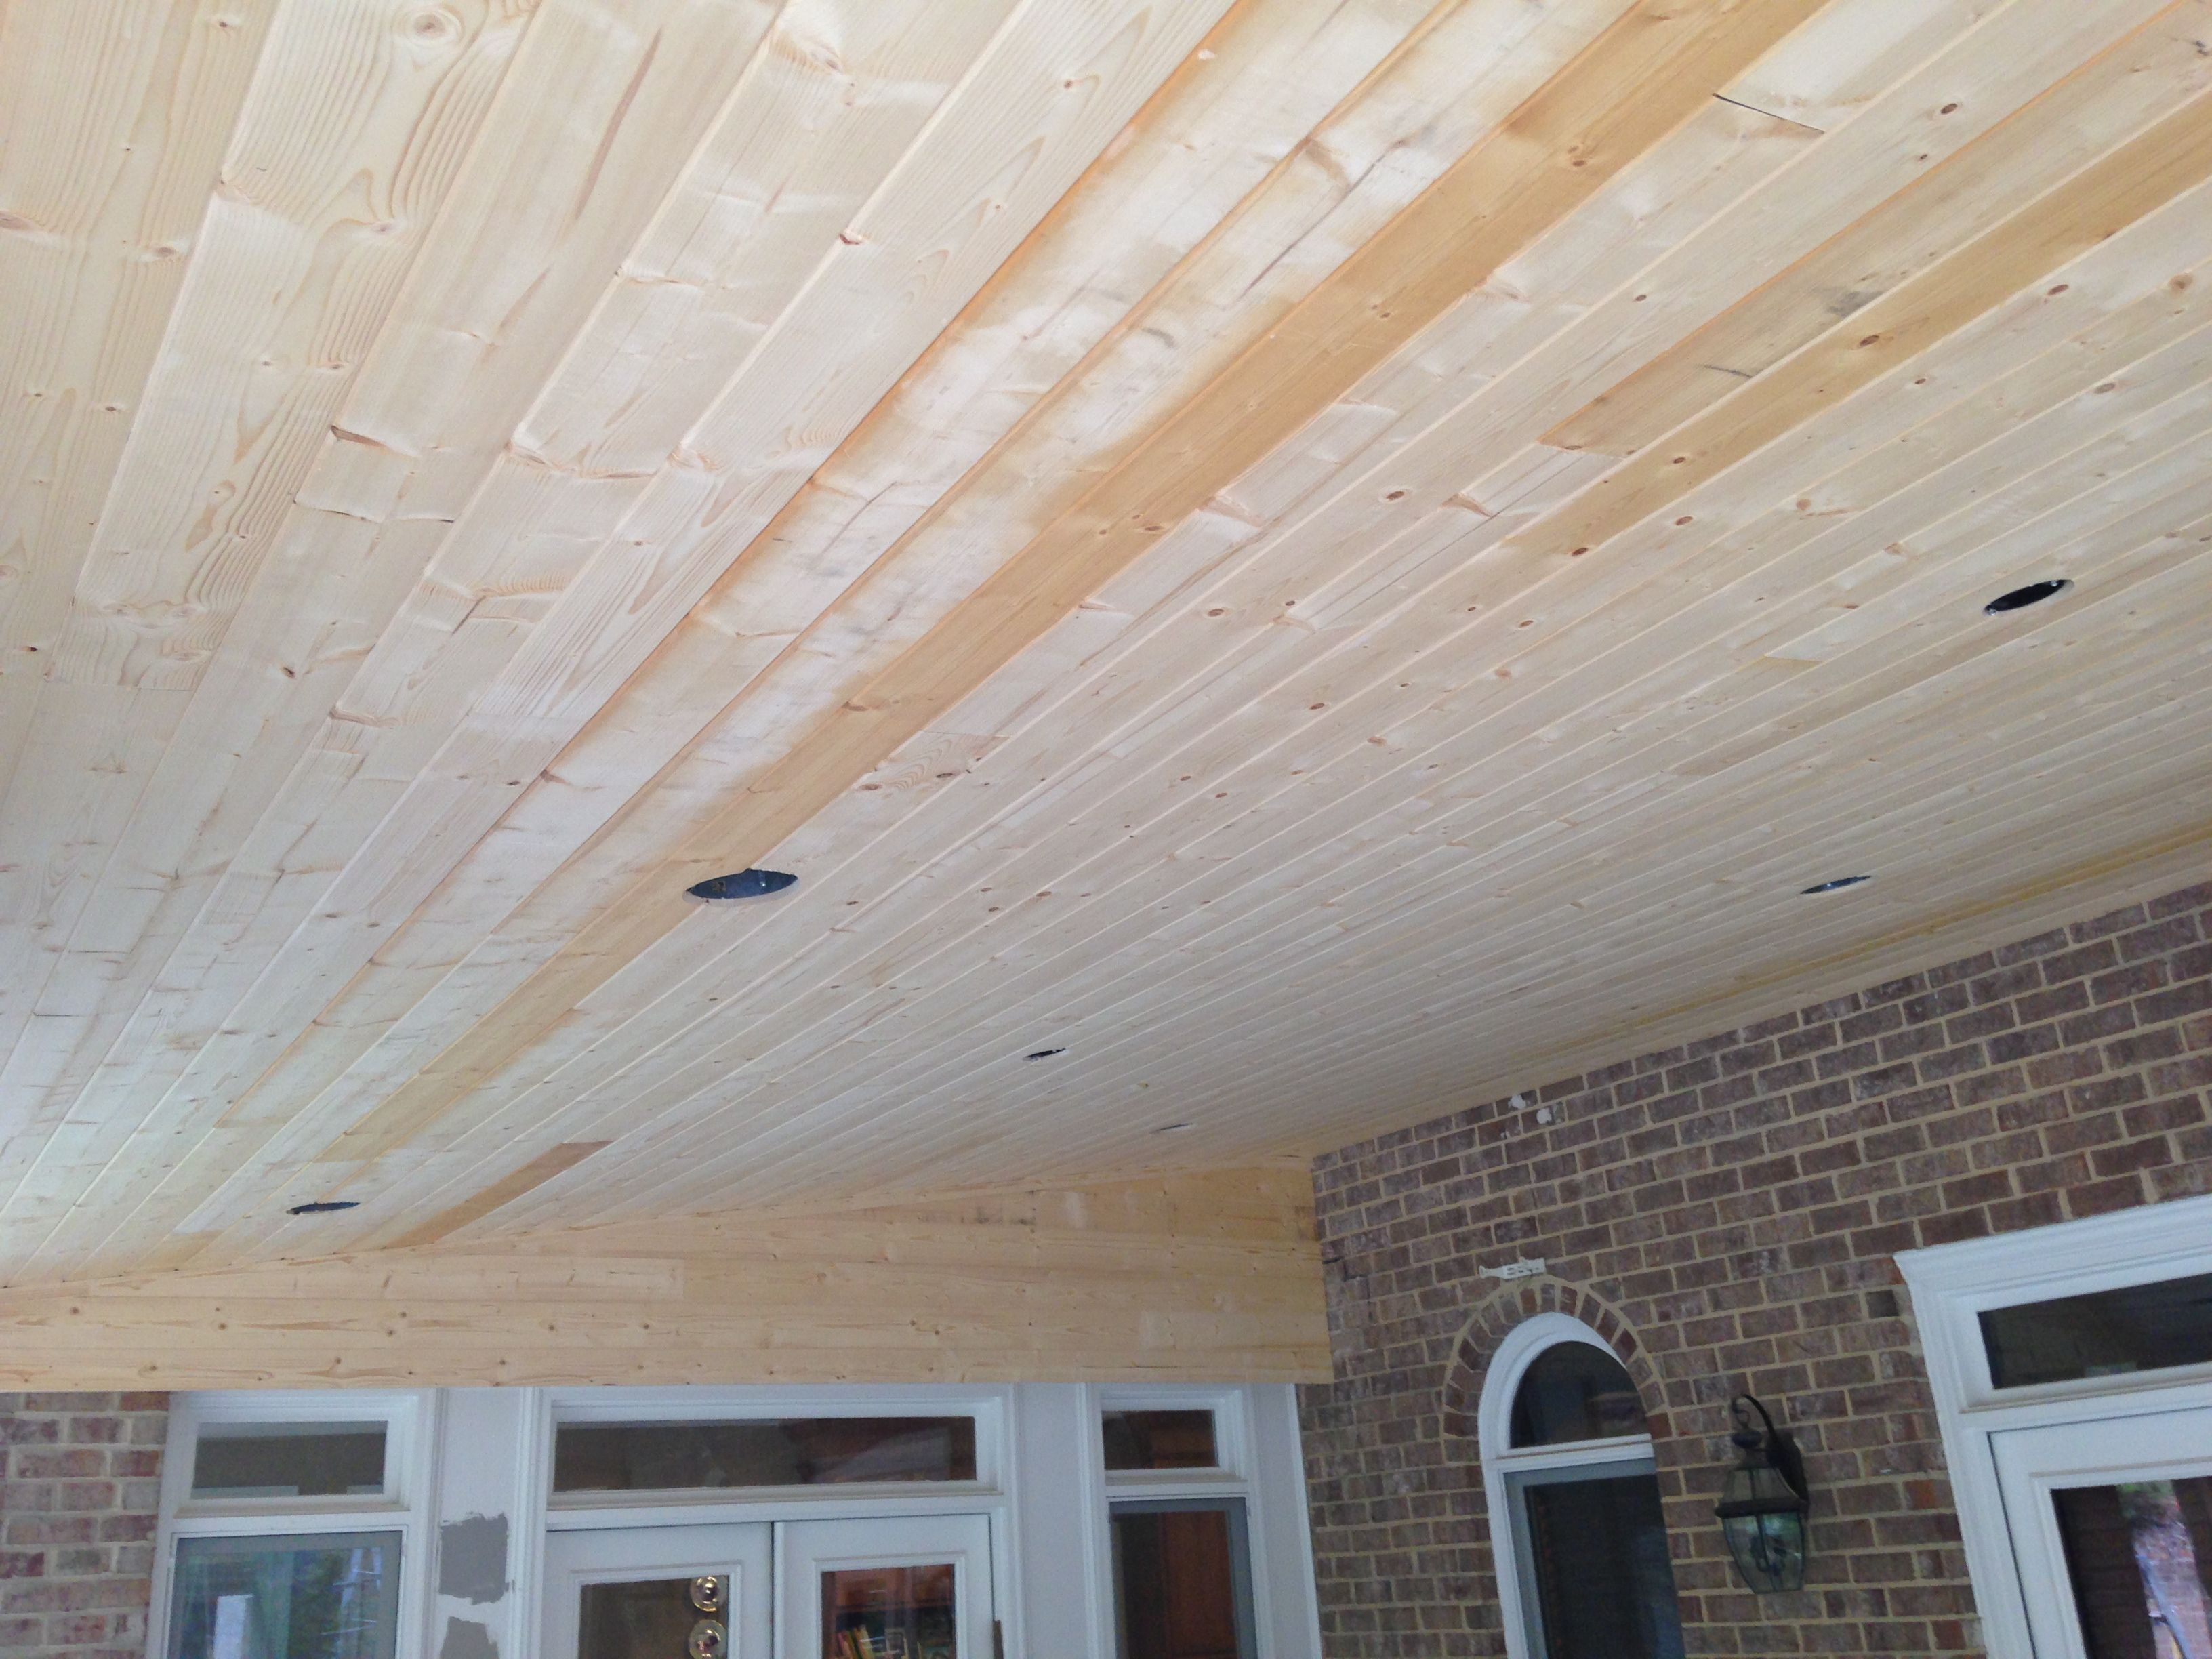 Tongue And Groove White Pine Porch Ceiling Before Stain Exteriorstaining Paint Foxbrothers Colored Ceiling Porch Ceiling Exterior Paint